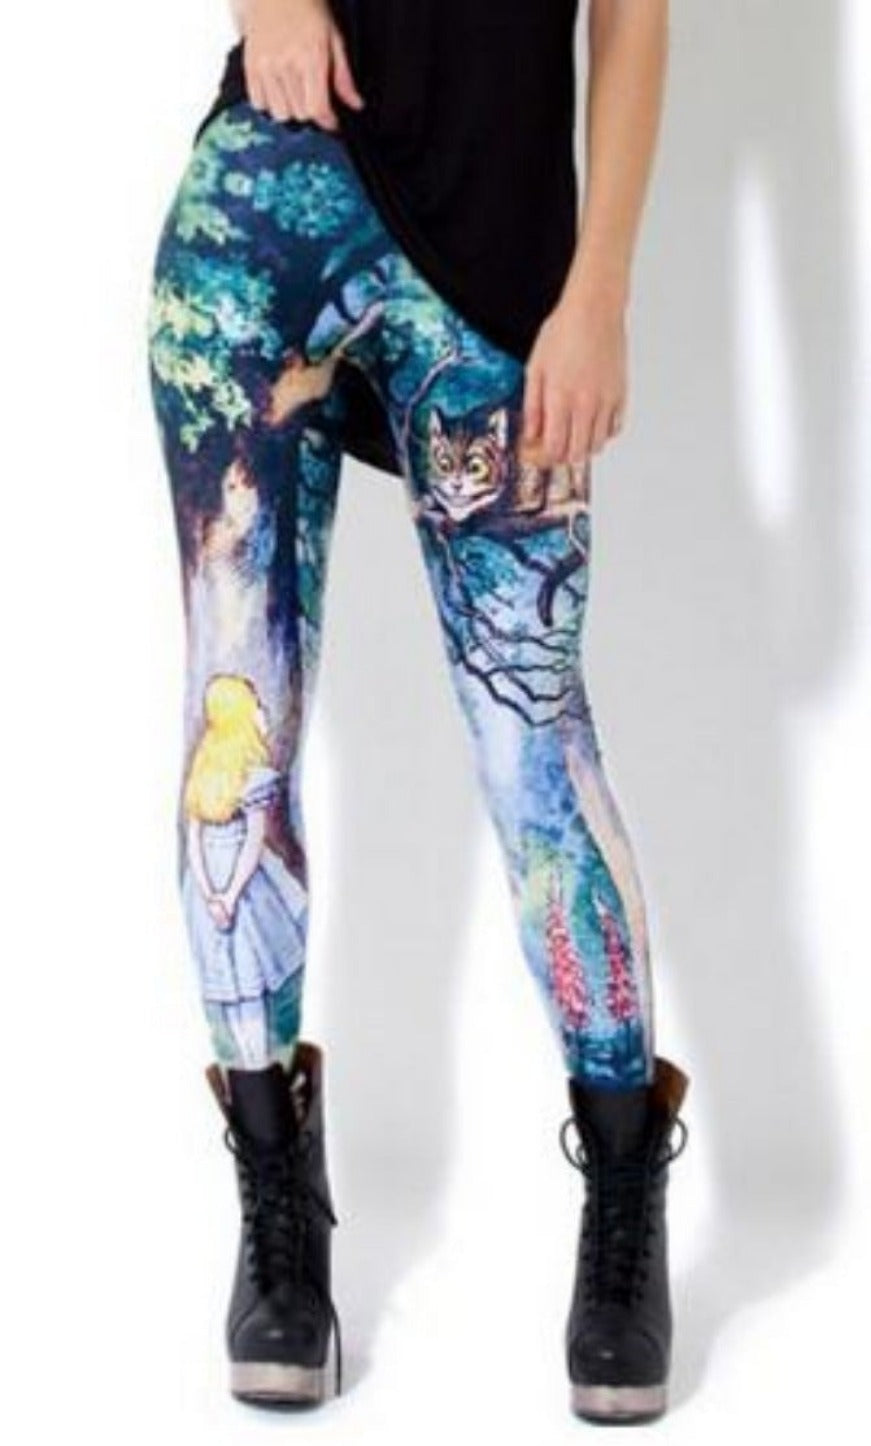 New space the Corpse Bride Printed fitness leggings women brand clothing punk rock pants-PANTS-SheSimplyShops